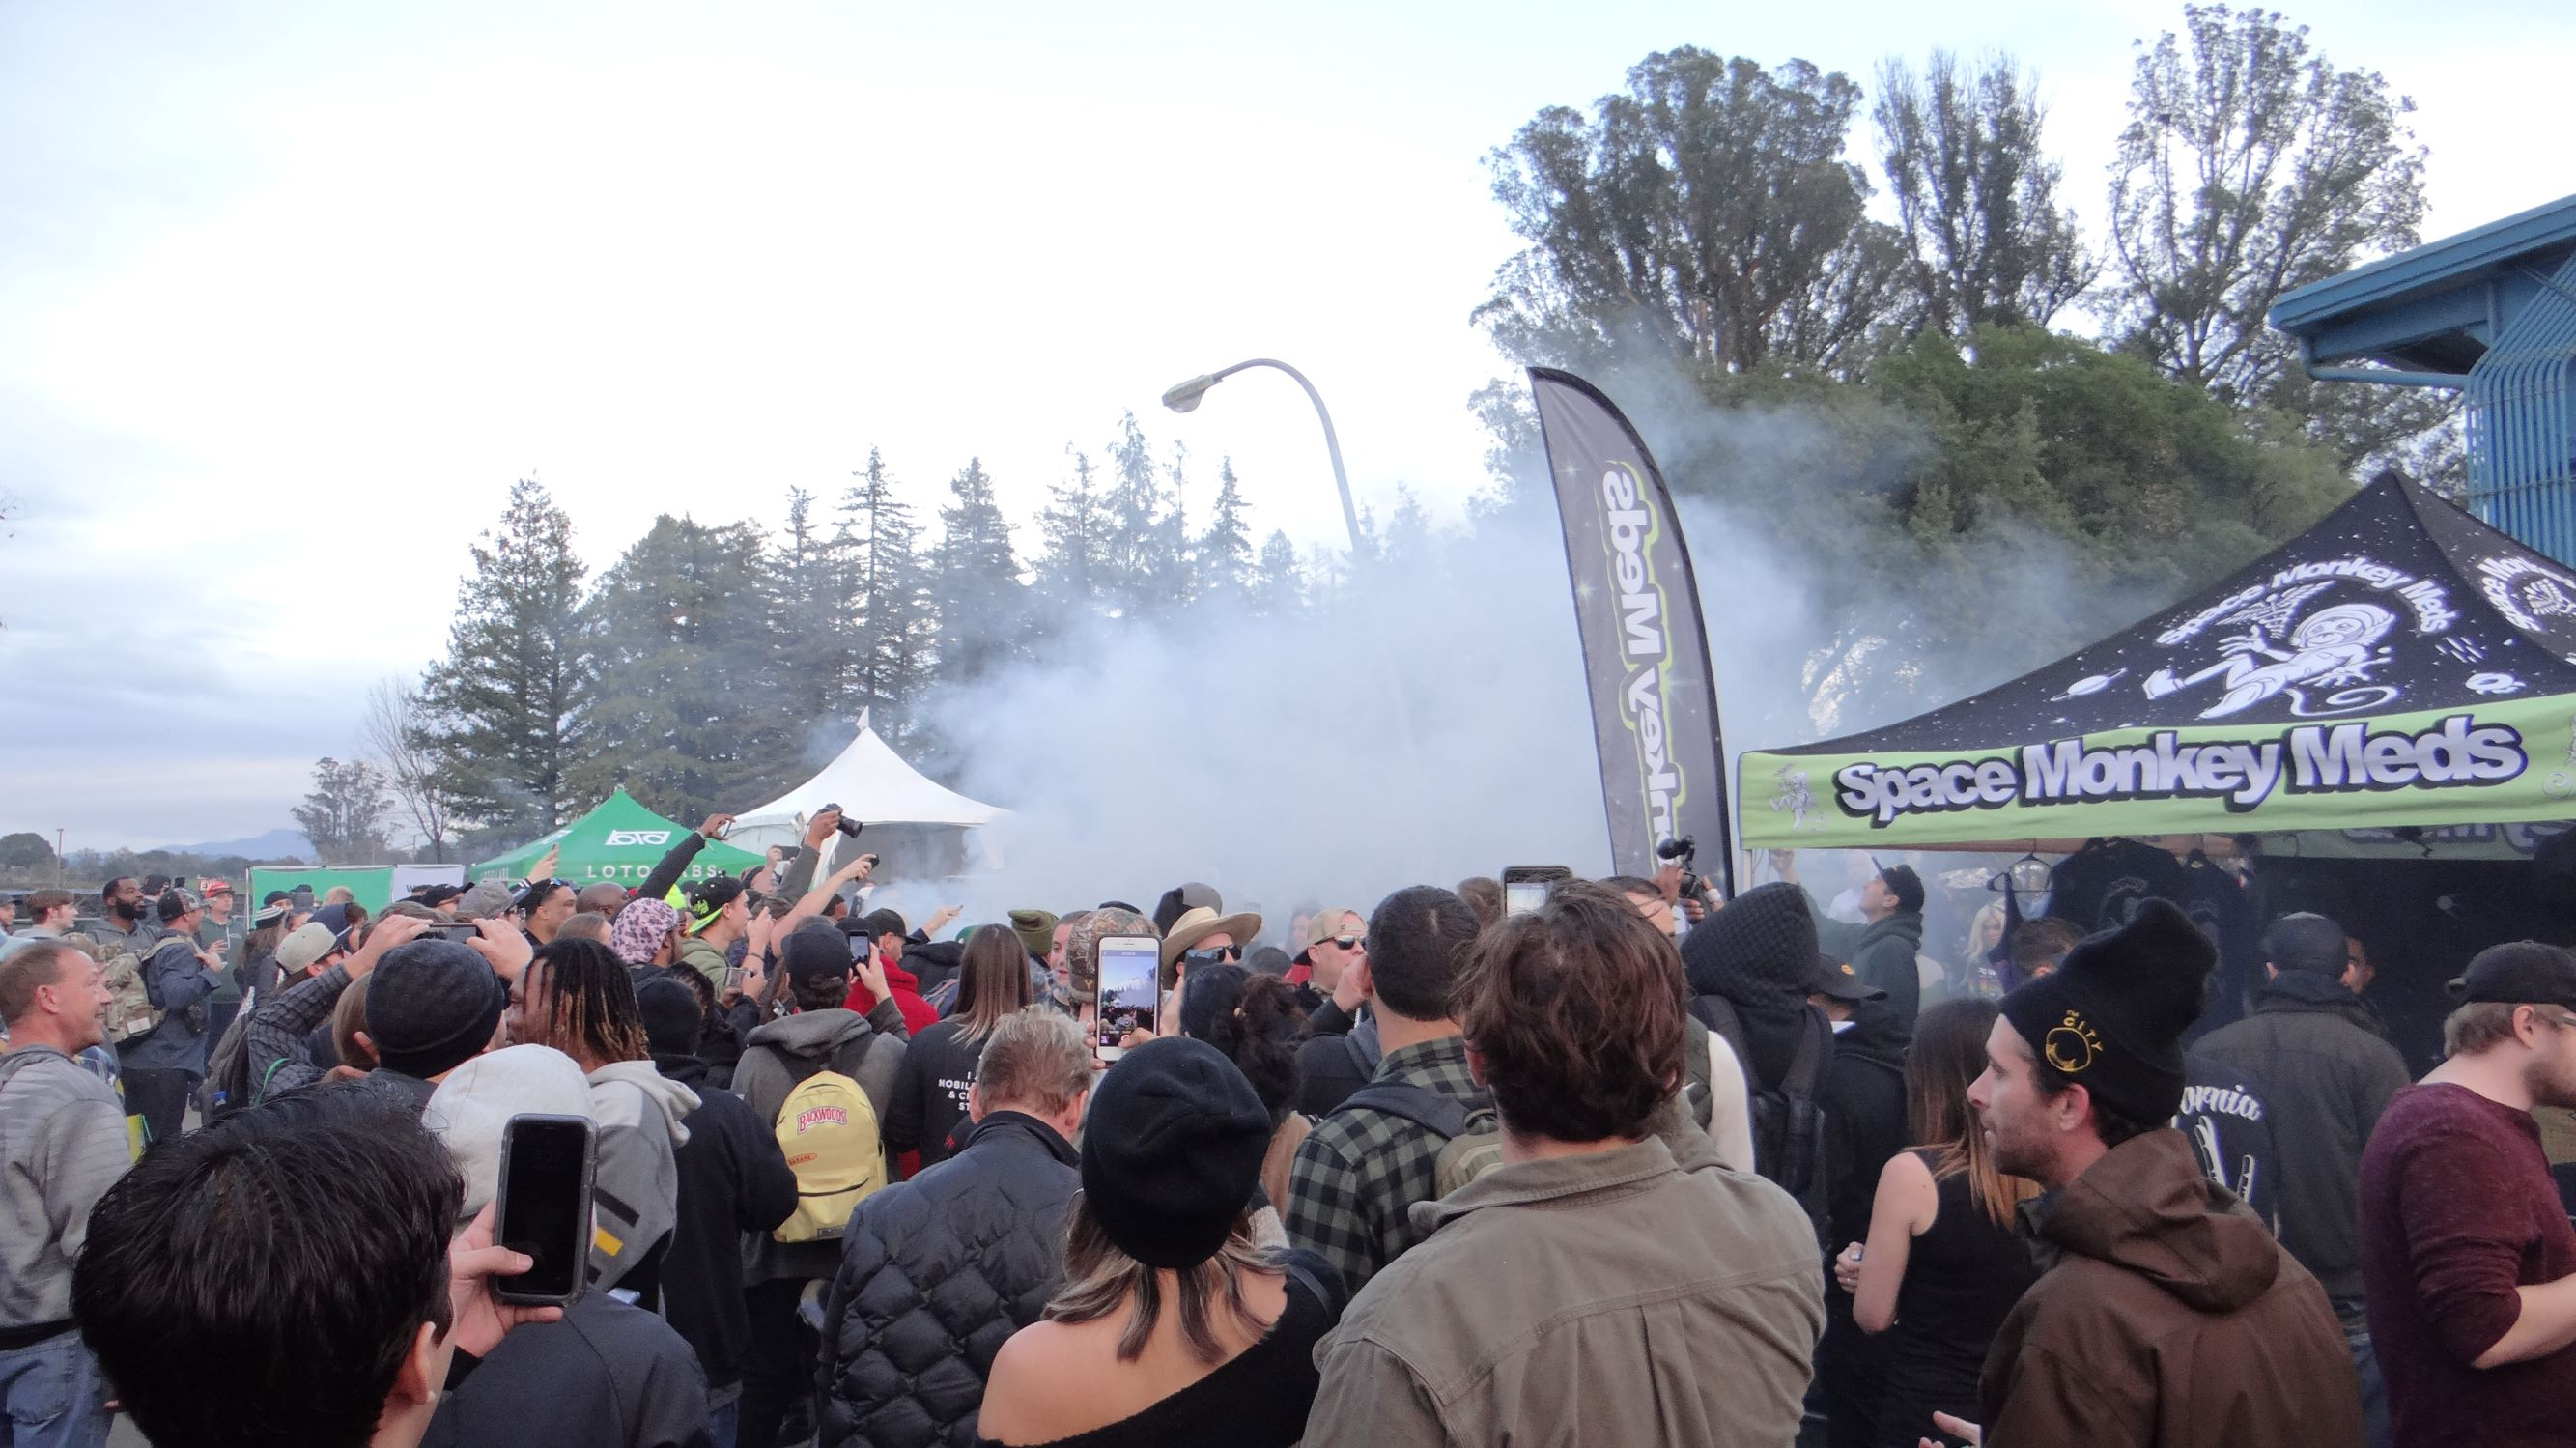 Blowing in the smoke!